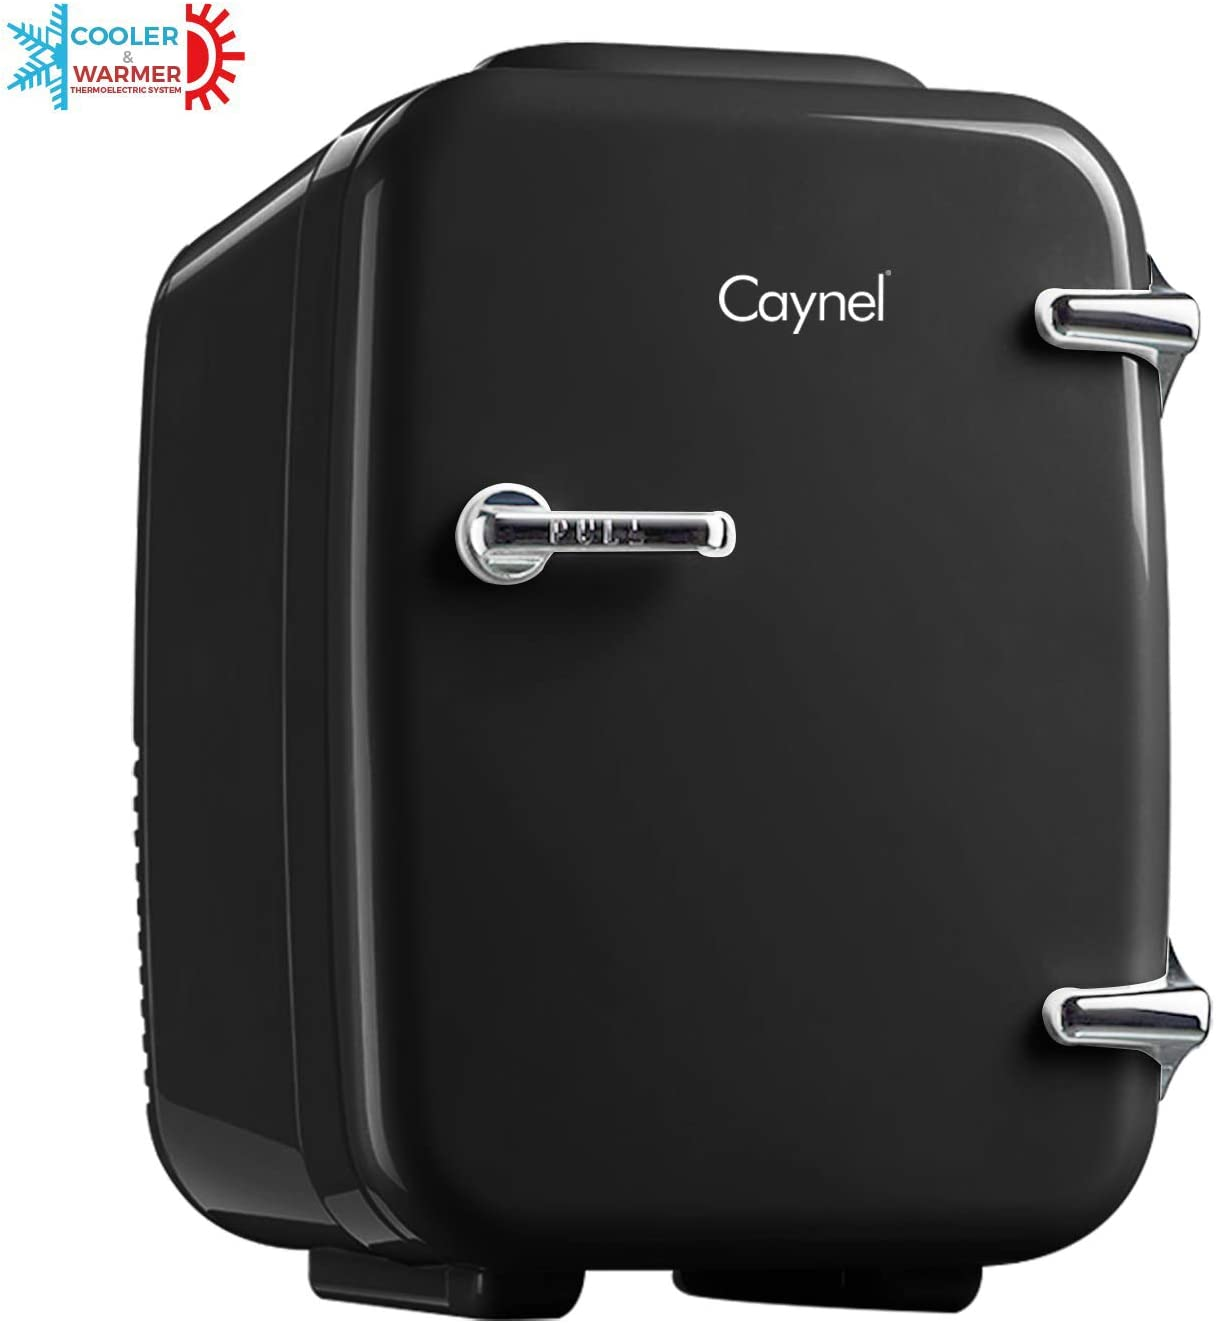 CAYNEL Mini Fridge Cooler and Warmer, (4Liter / 6Can) Portable Compact Personal Fridge, AC/DC Thermoelectric System, 100% Freon-Free Eco Friendly for Home, Office and Car